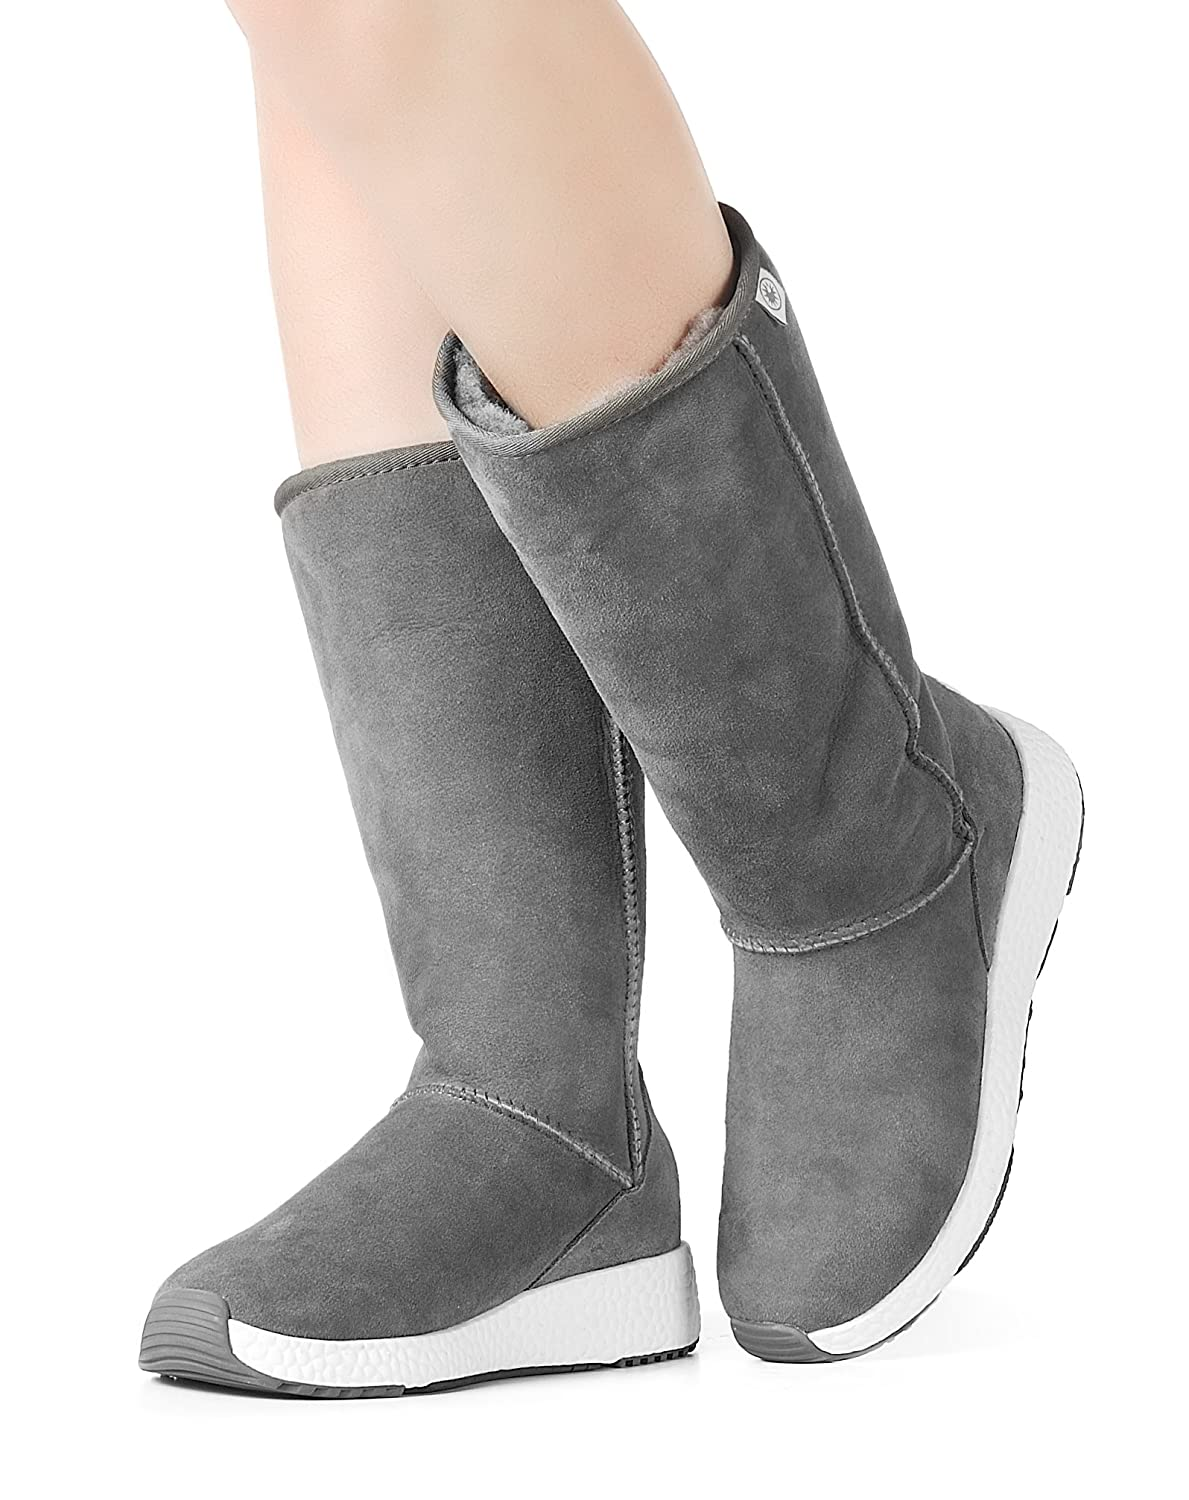 Aumu Pull Suede On Classic Suede Pull Winter Boots B07G5YR79X Snow Boots 1dcac9